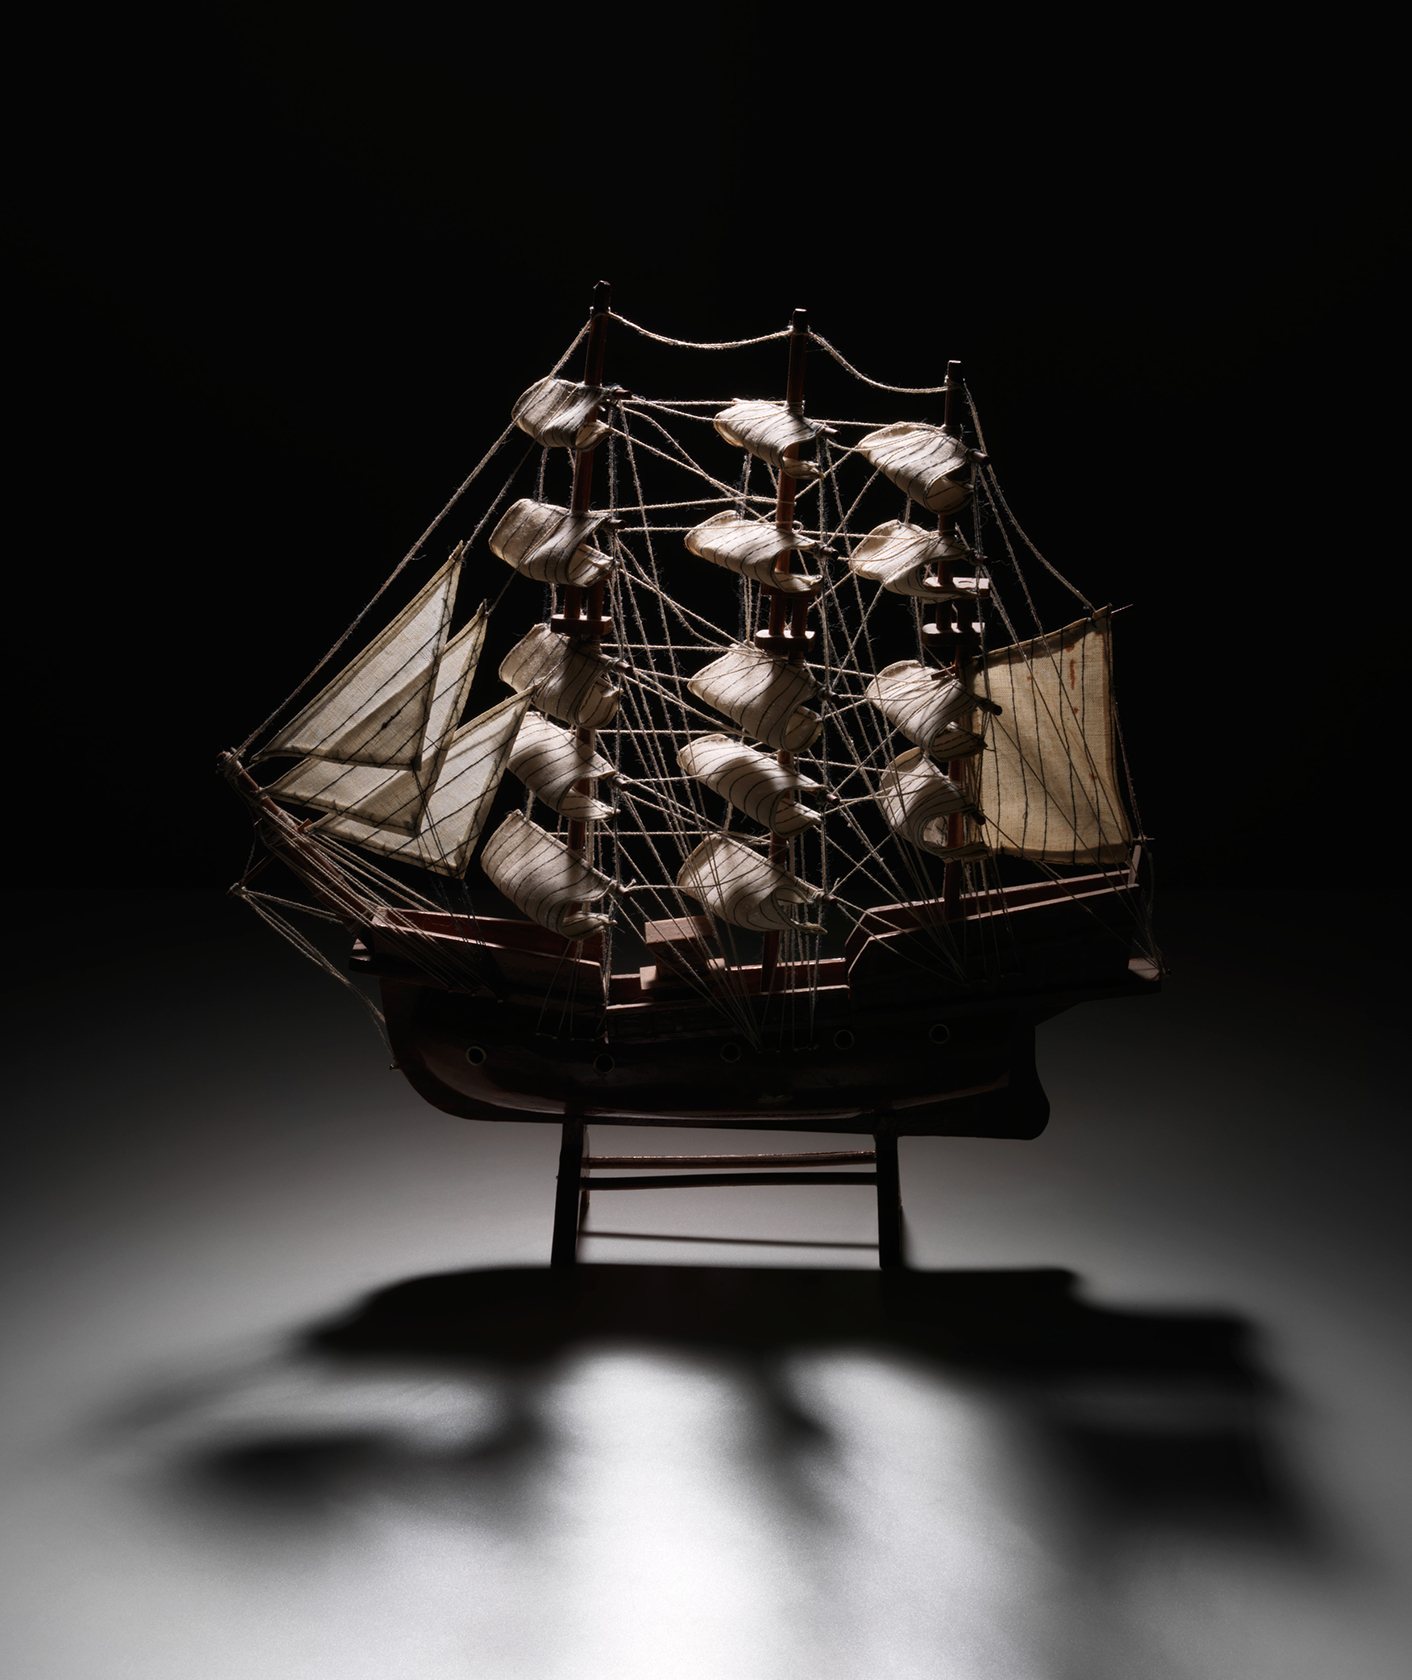 A model of an 1800s sailing ship sits on a neutral background